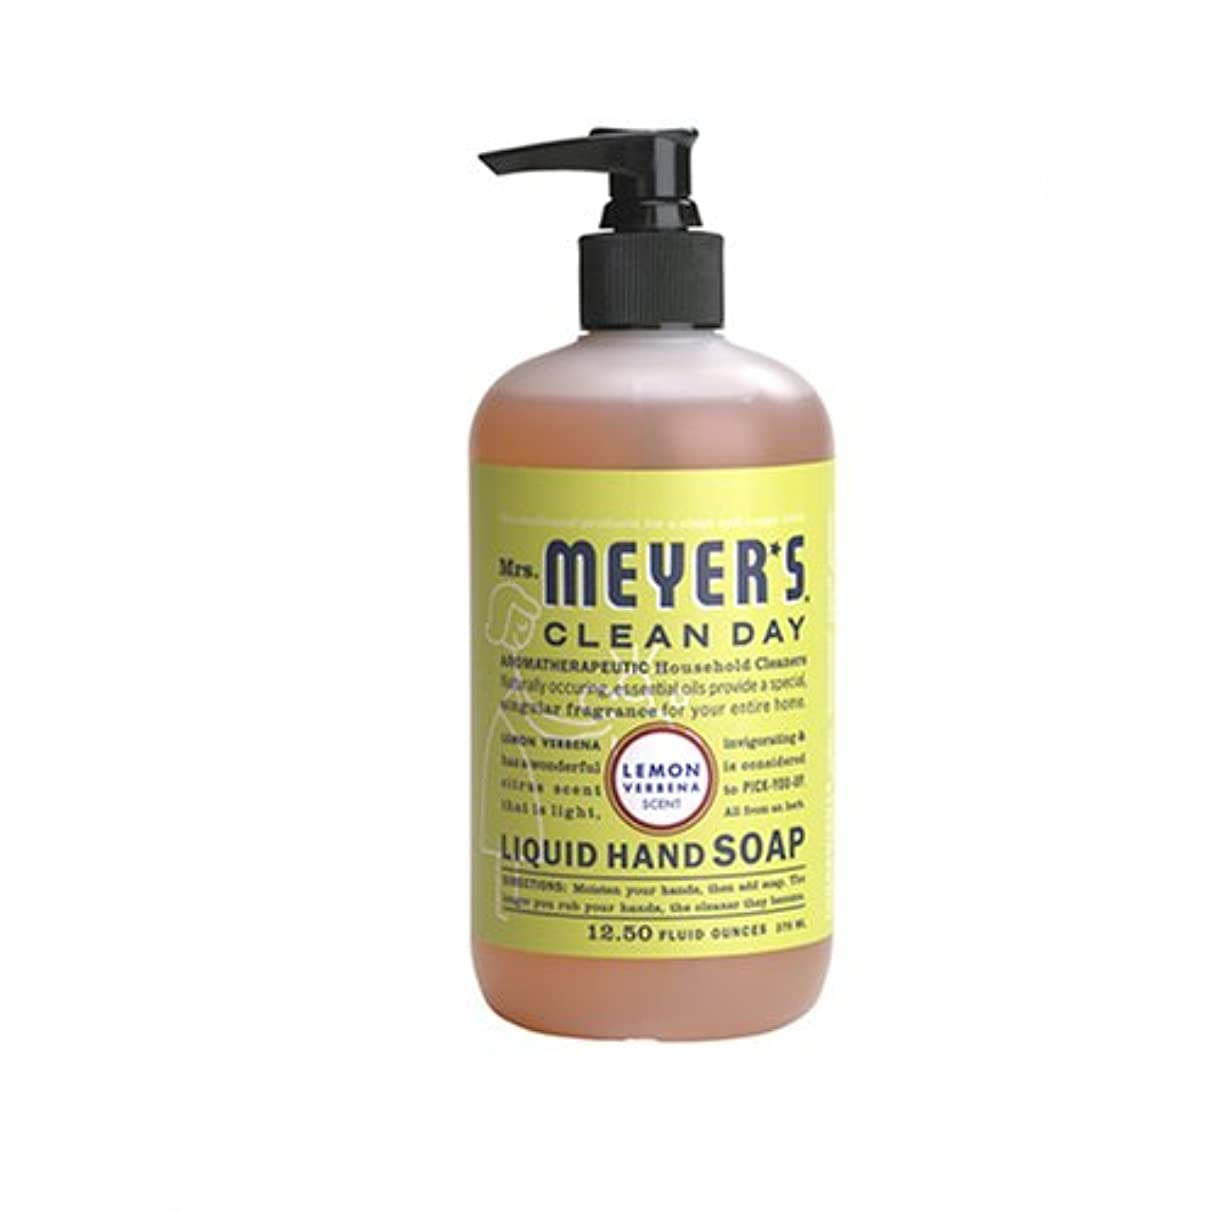 幼児スーパーマーケット無知Mrs. Meyers Clean Day, Liquid Hand Soap, Lemon Verbena Scent, 12.5 fl oz (370 ml)